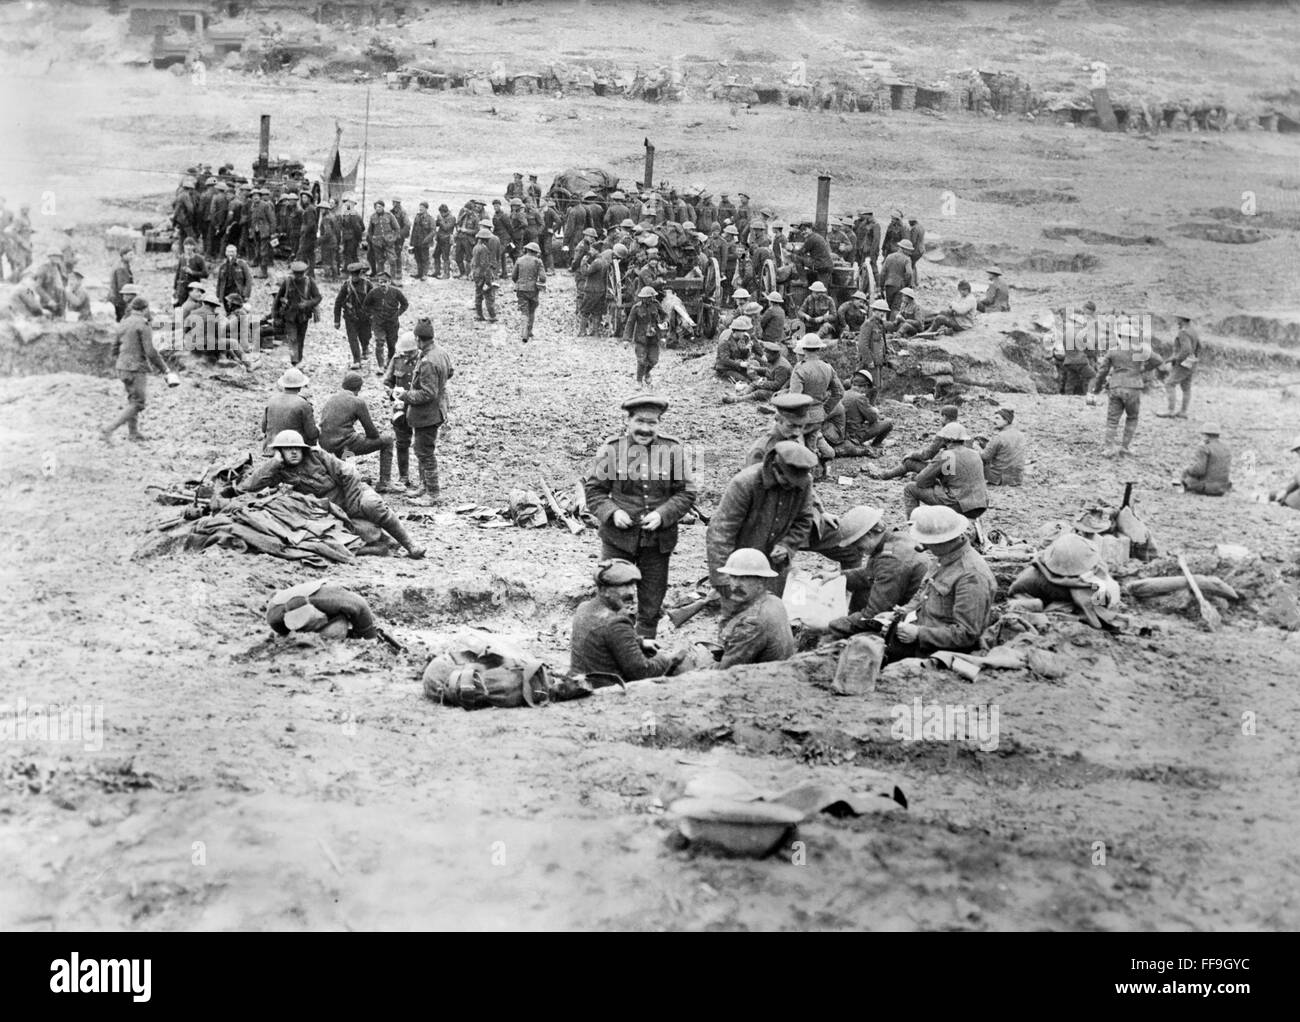 British troops at field kitchens and dug-outs in 'Sausage Valley,' Somme River, France, during World War - Stock Image